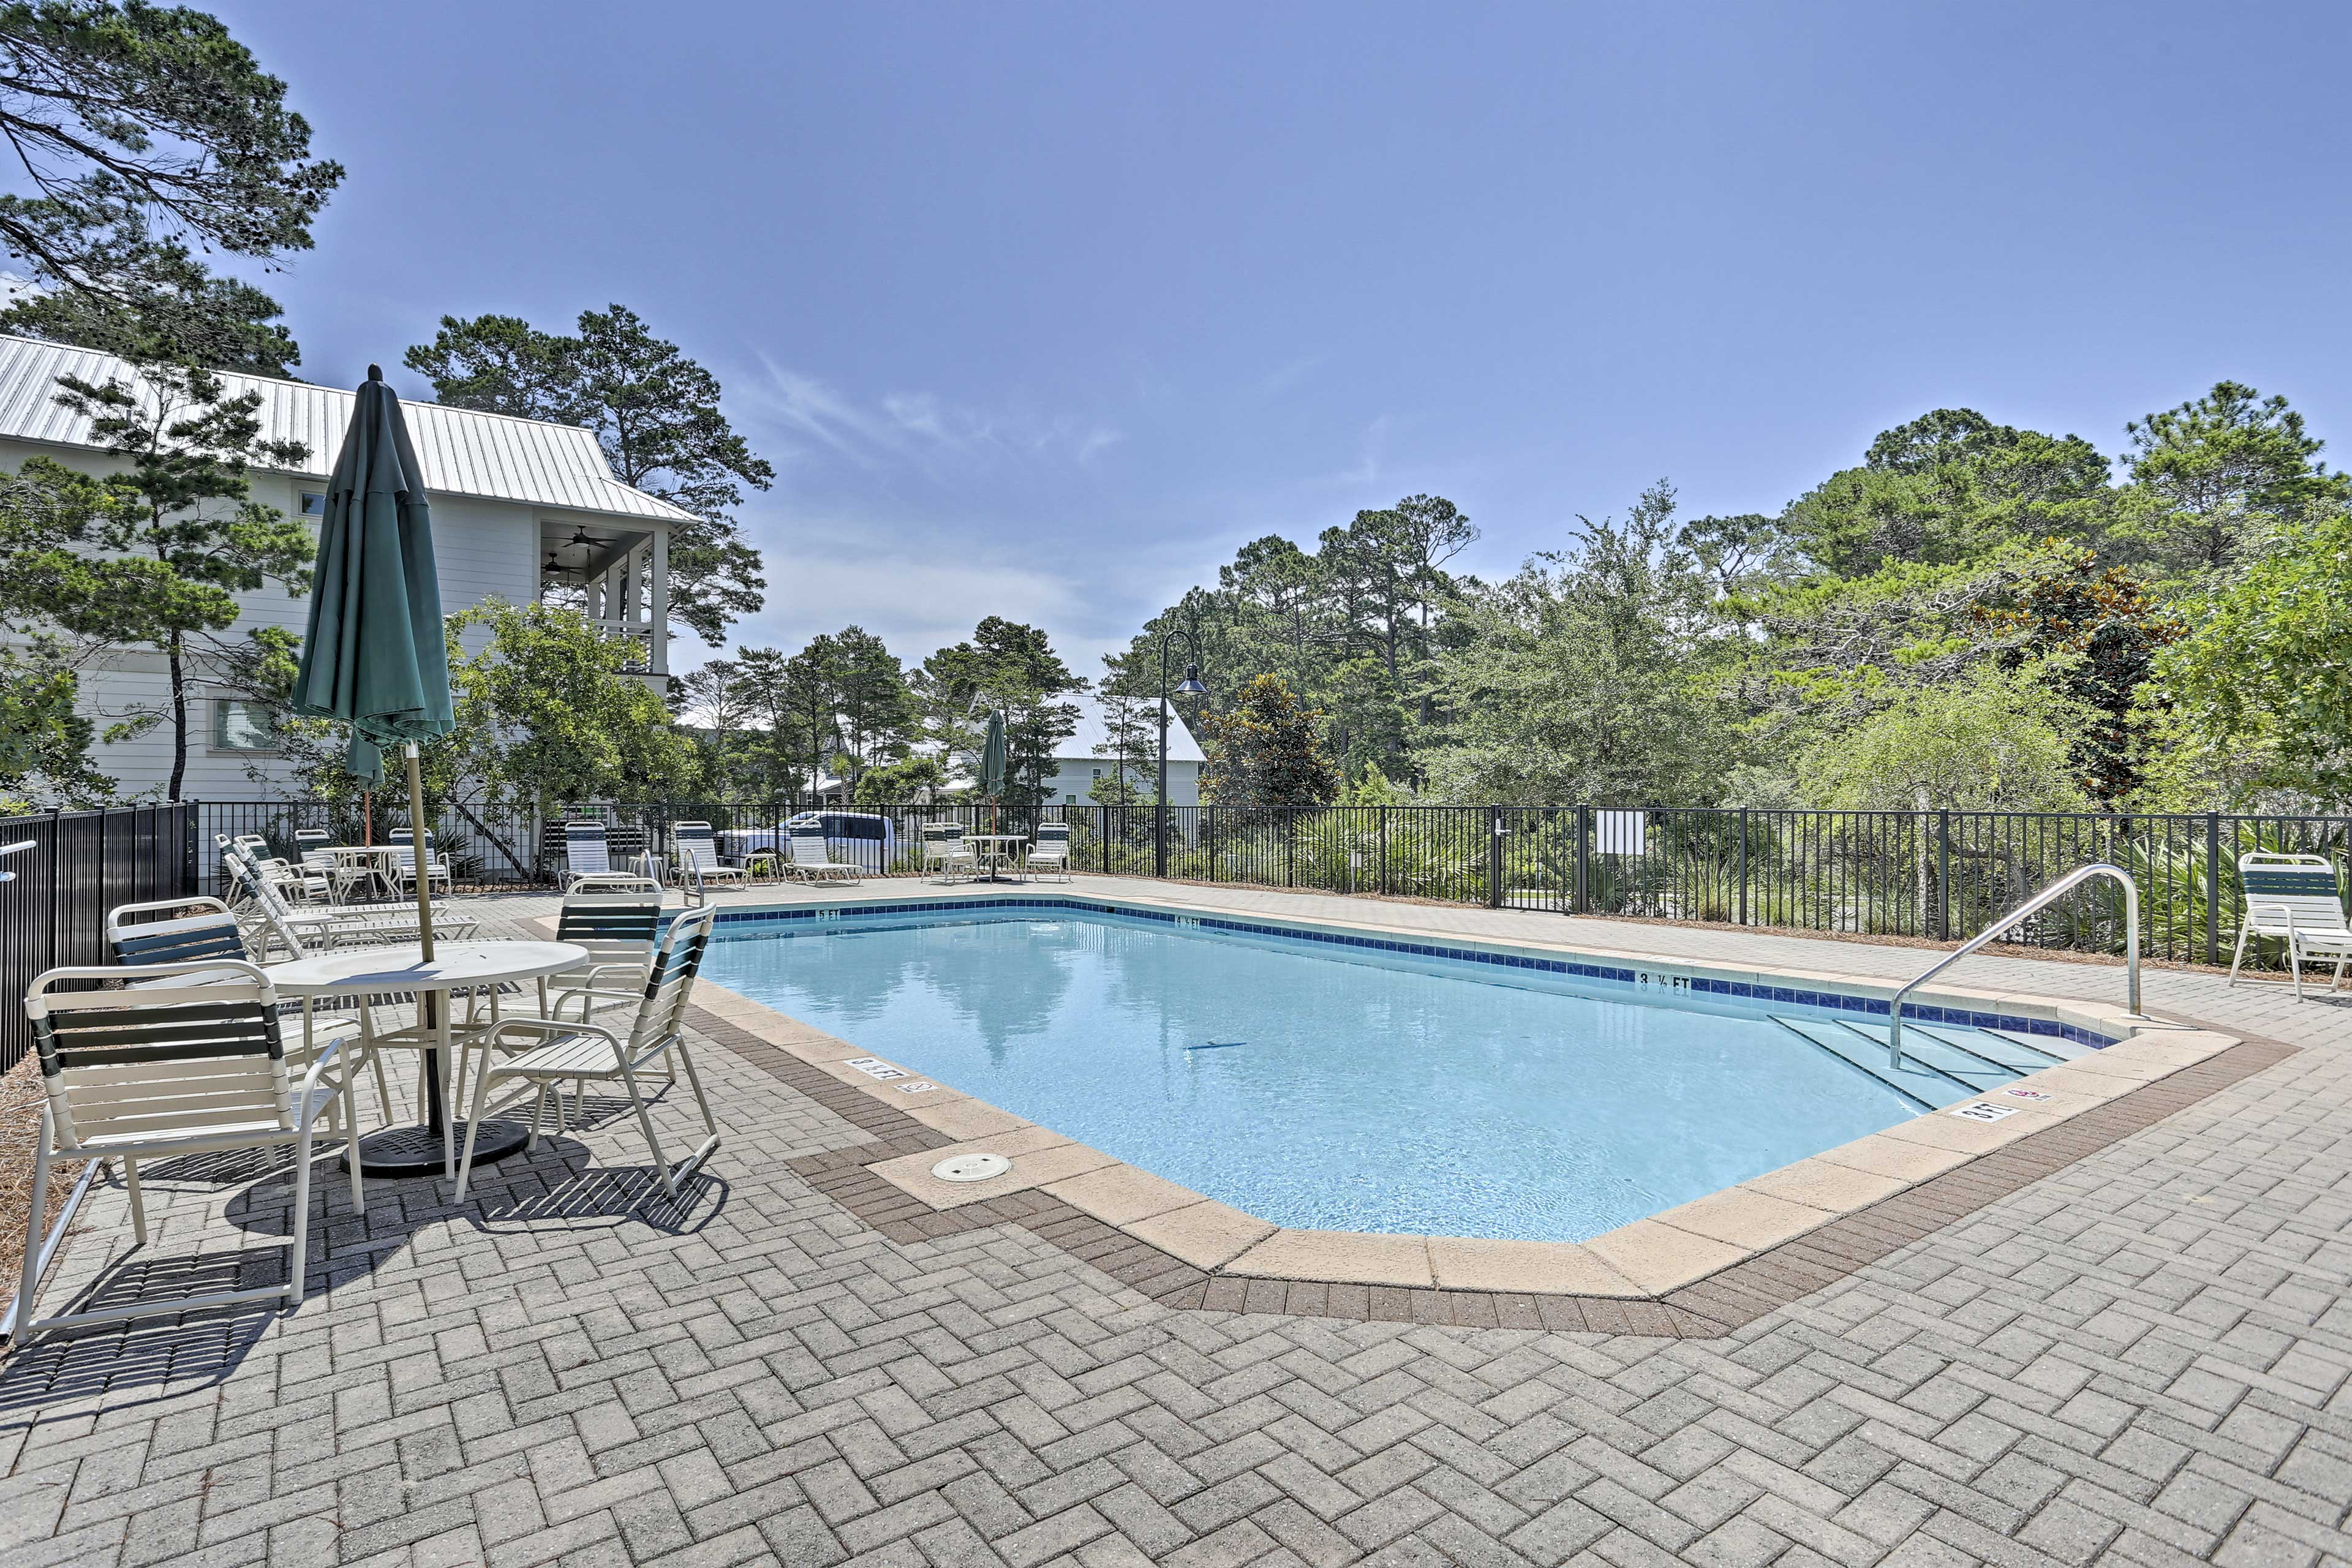 Let this charming Santa Rosa home be your new Gulf Coast escape!